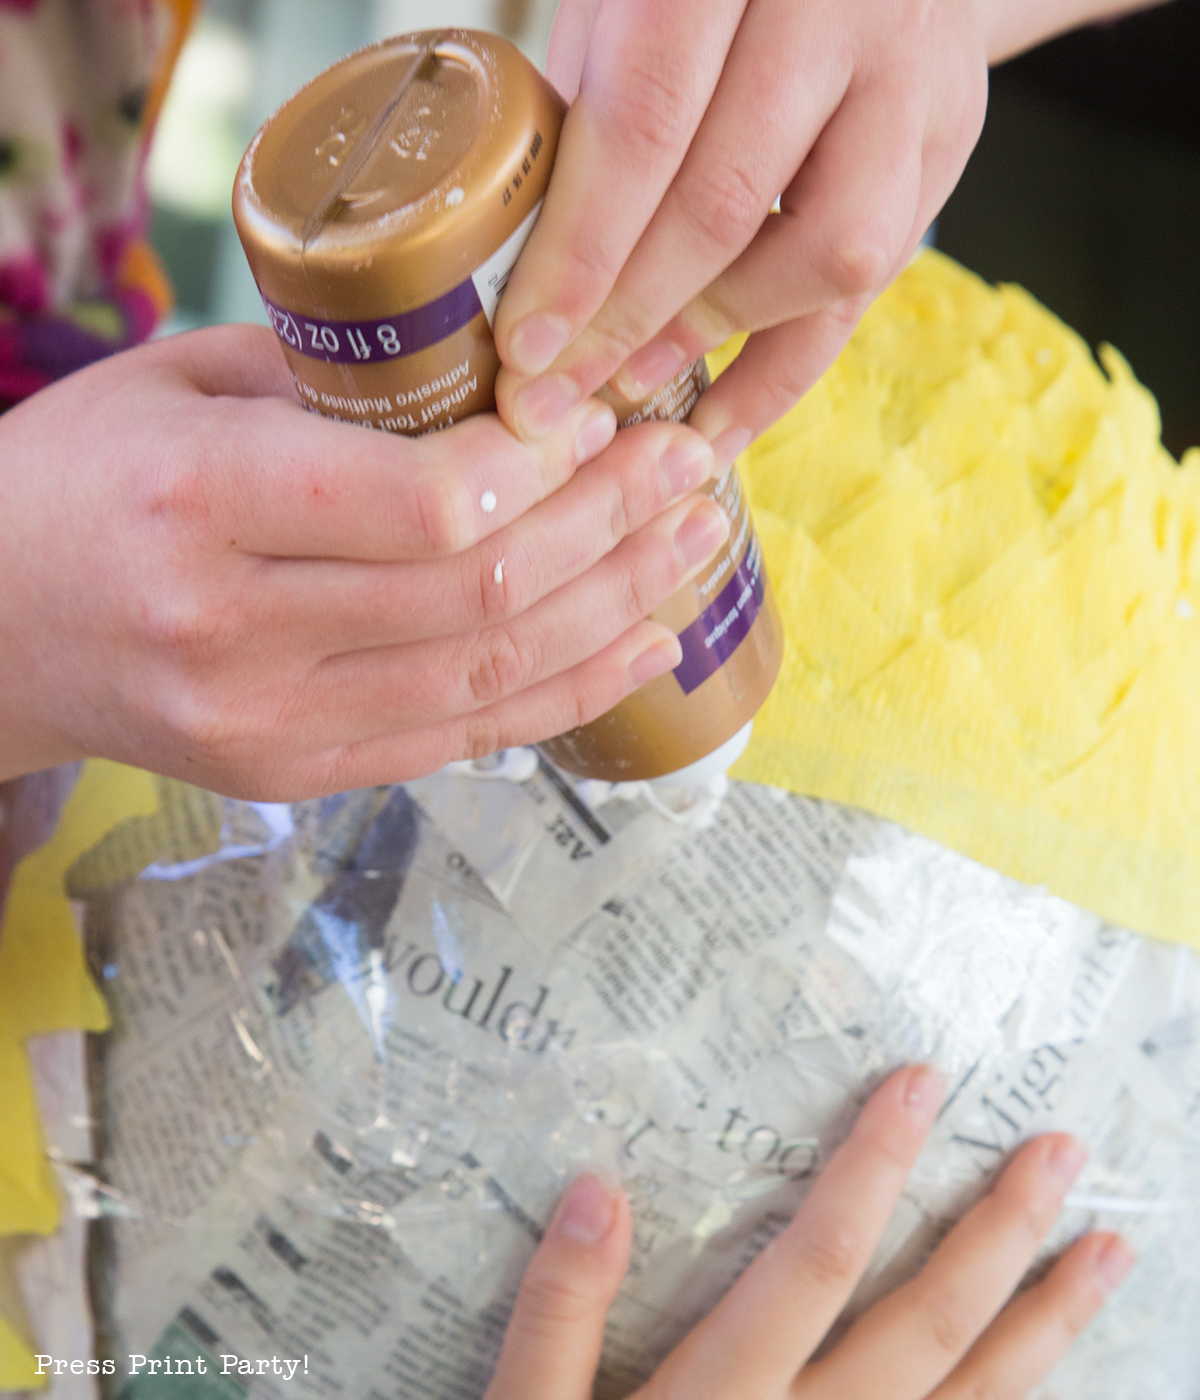 Pineapple Pinata Tutorial. How to make a pineapple pinata. By Press Print Party!